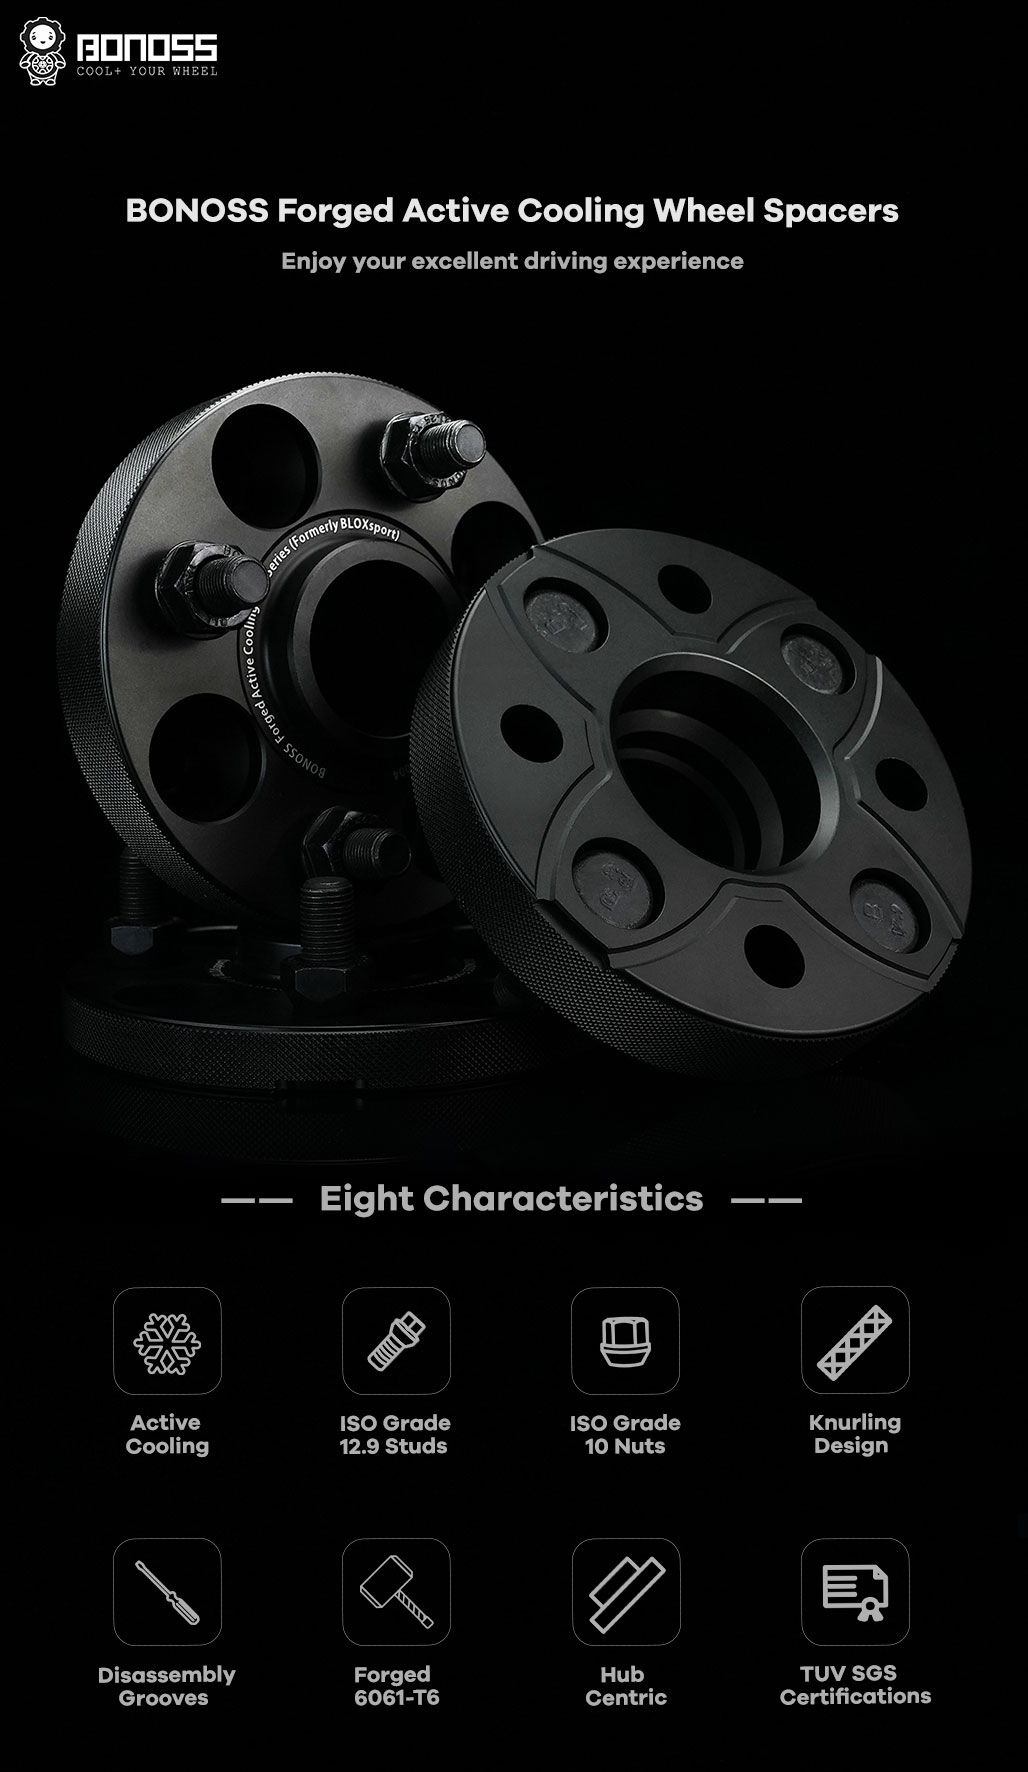 BONOSS Forged Active Cooling Hubcentric Wheel Spacers 4 Lug Wheel Adapters Wheel ET Spacers AL6061-T6